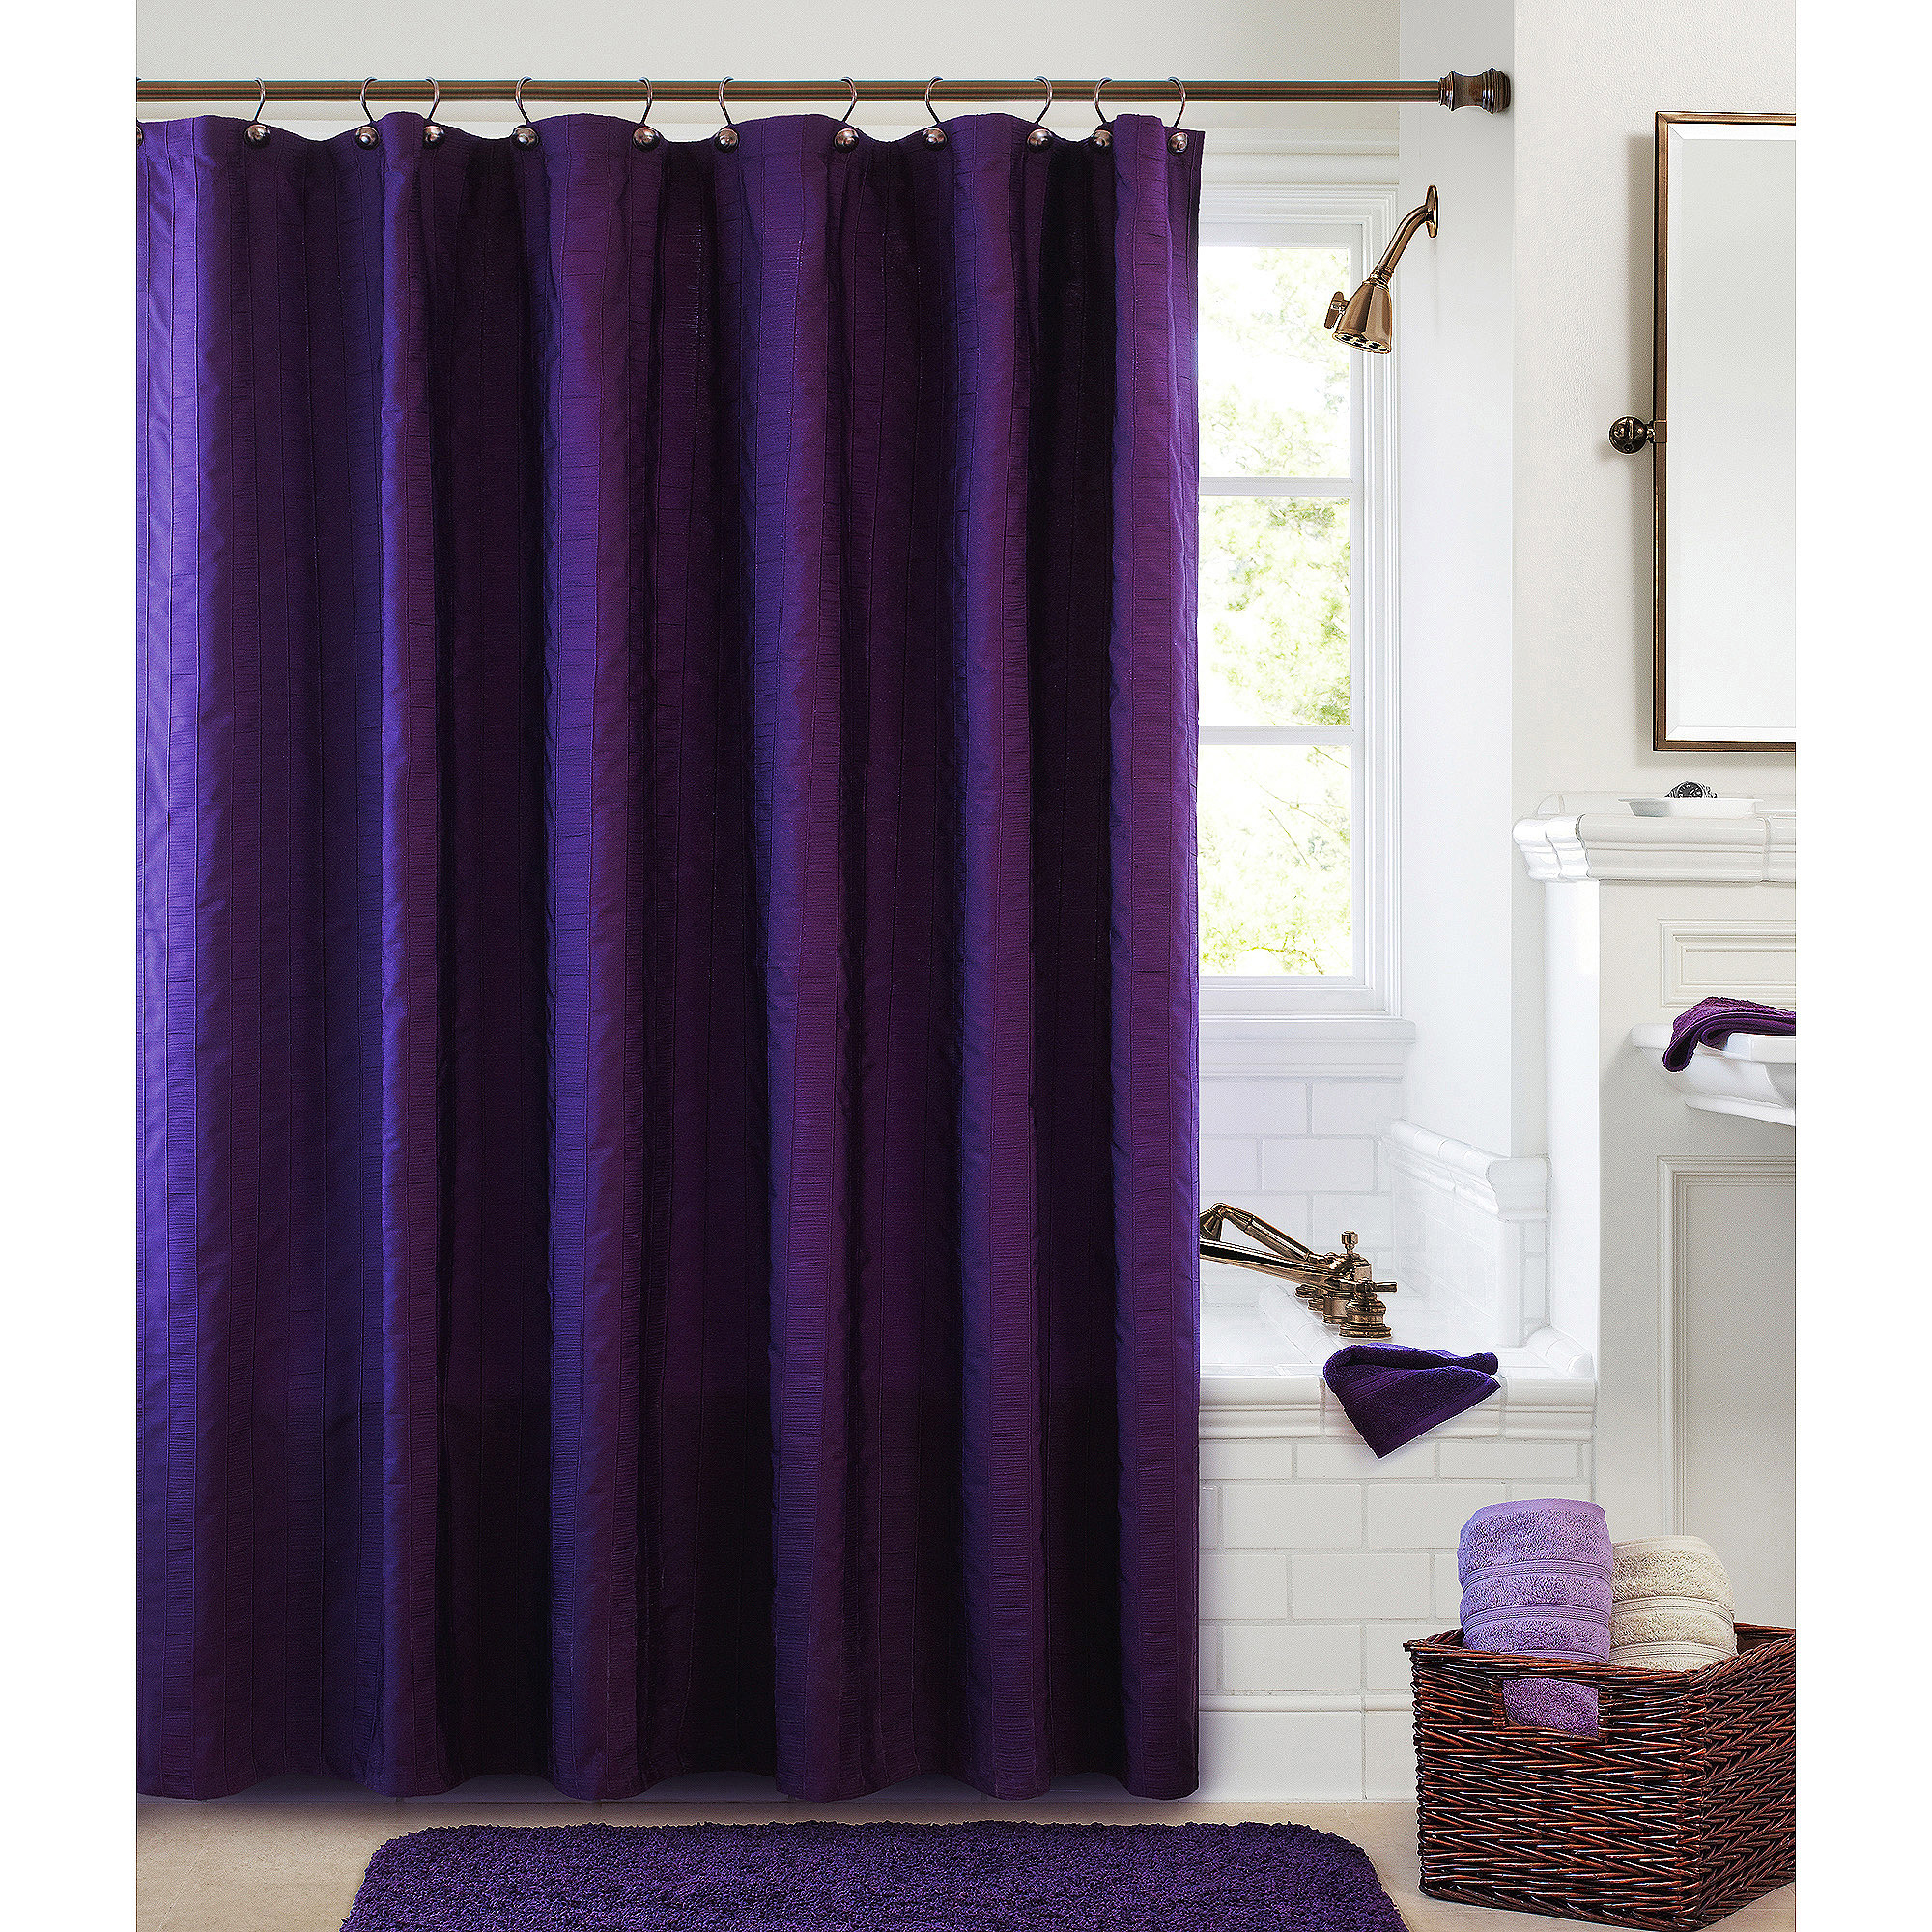 Better Homes And Garden Gathered Stripe Fabric Shower Curtain intended for sizing 2000 X 2000